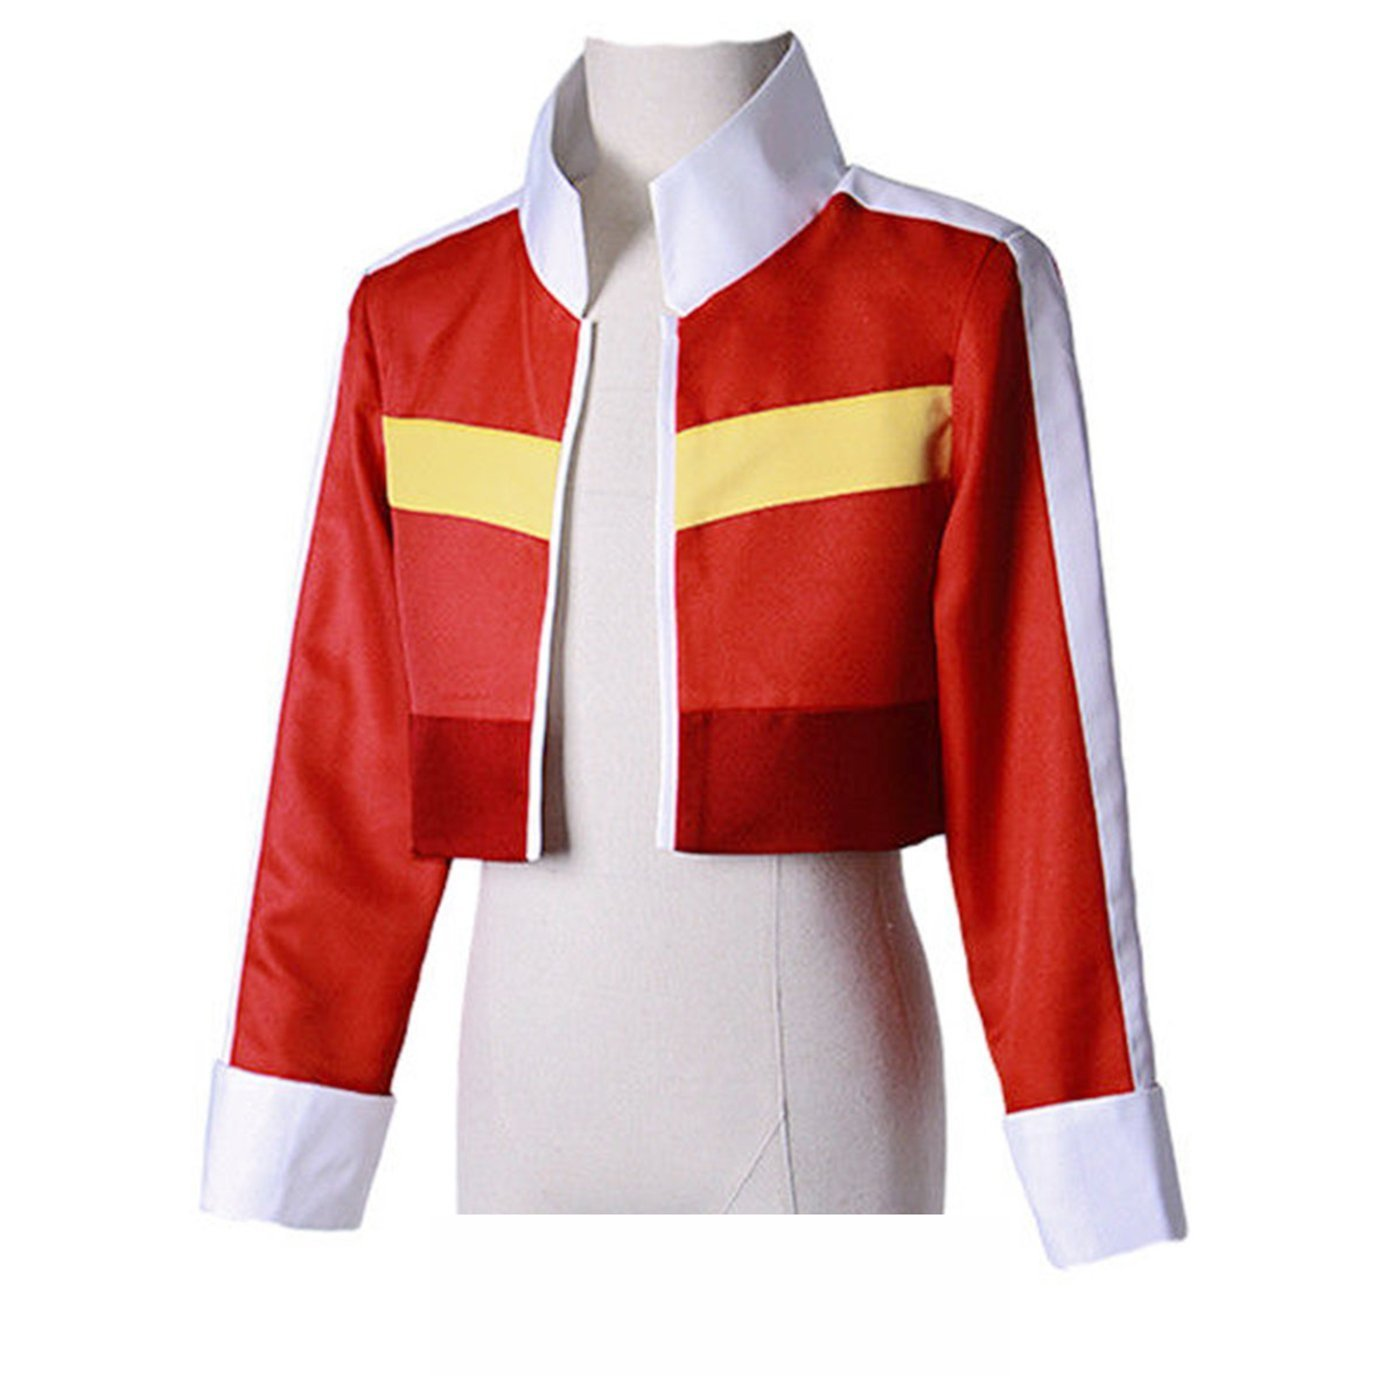 COSFLY Legendary Defender Keith Red Jacket Top Coat Cosplay Costumes Outfit (Medium, Female)